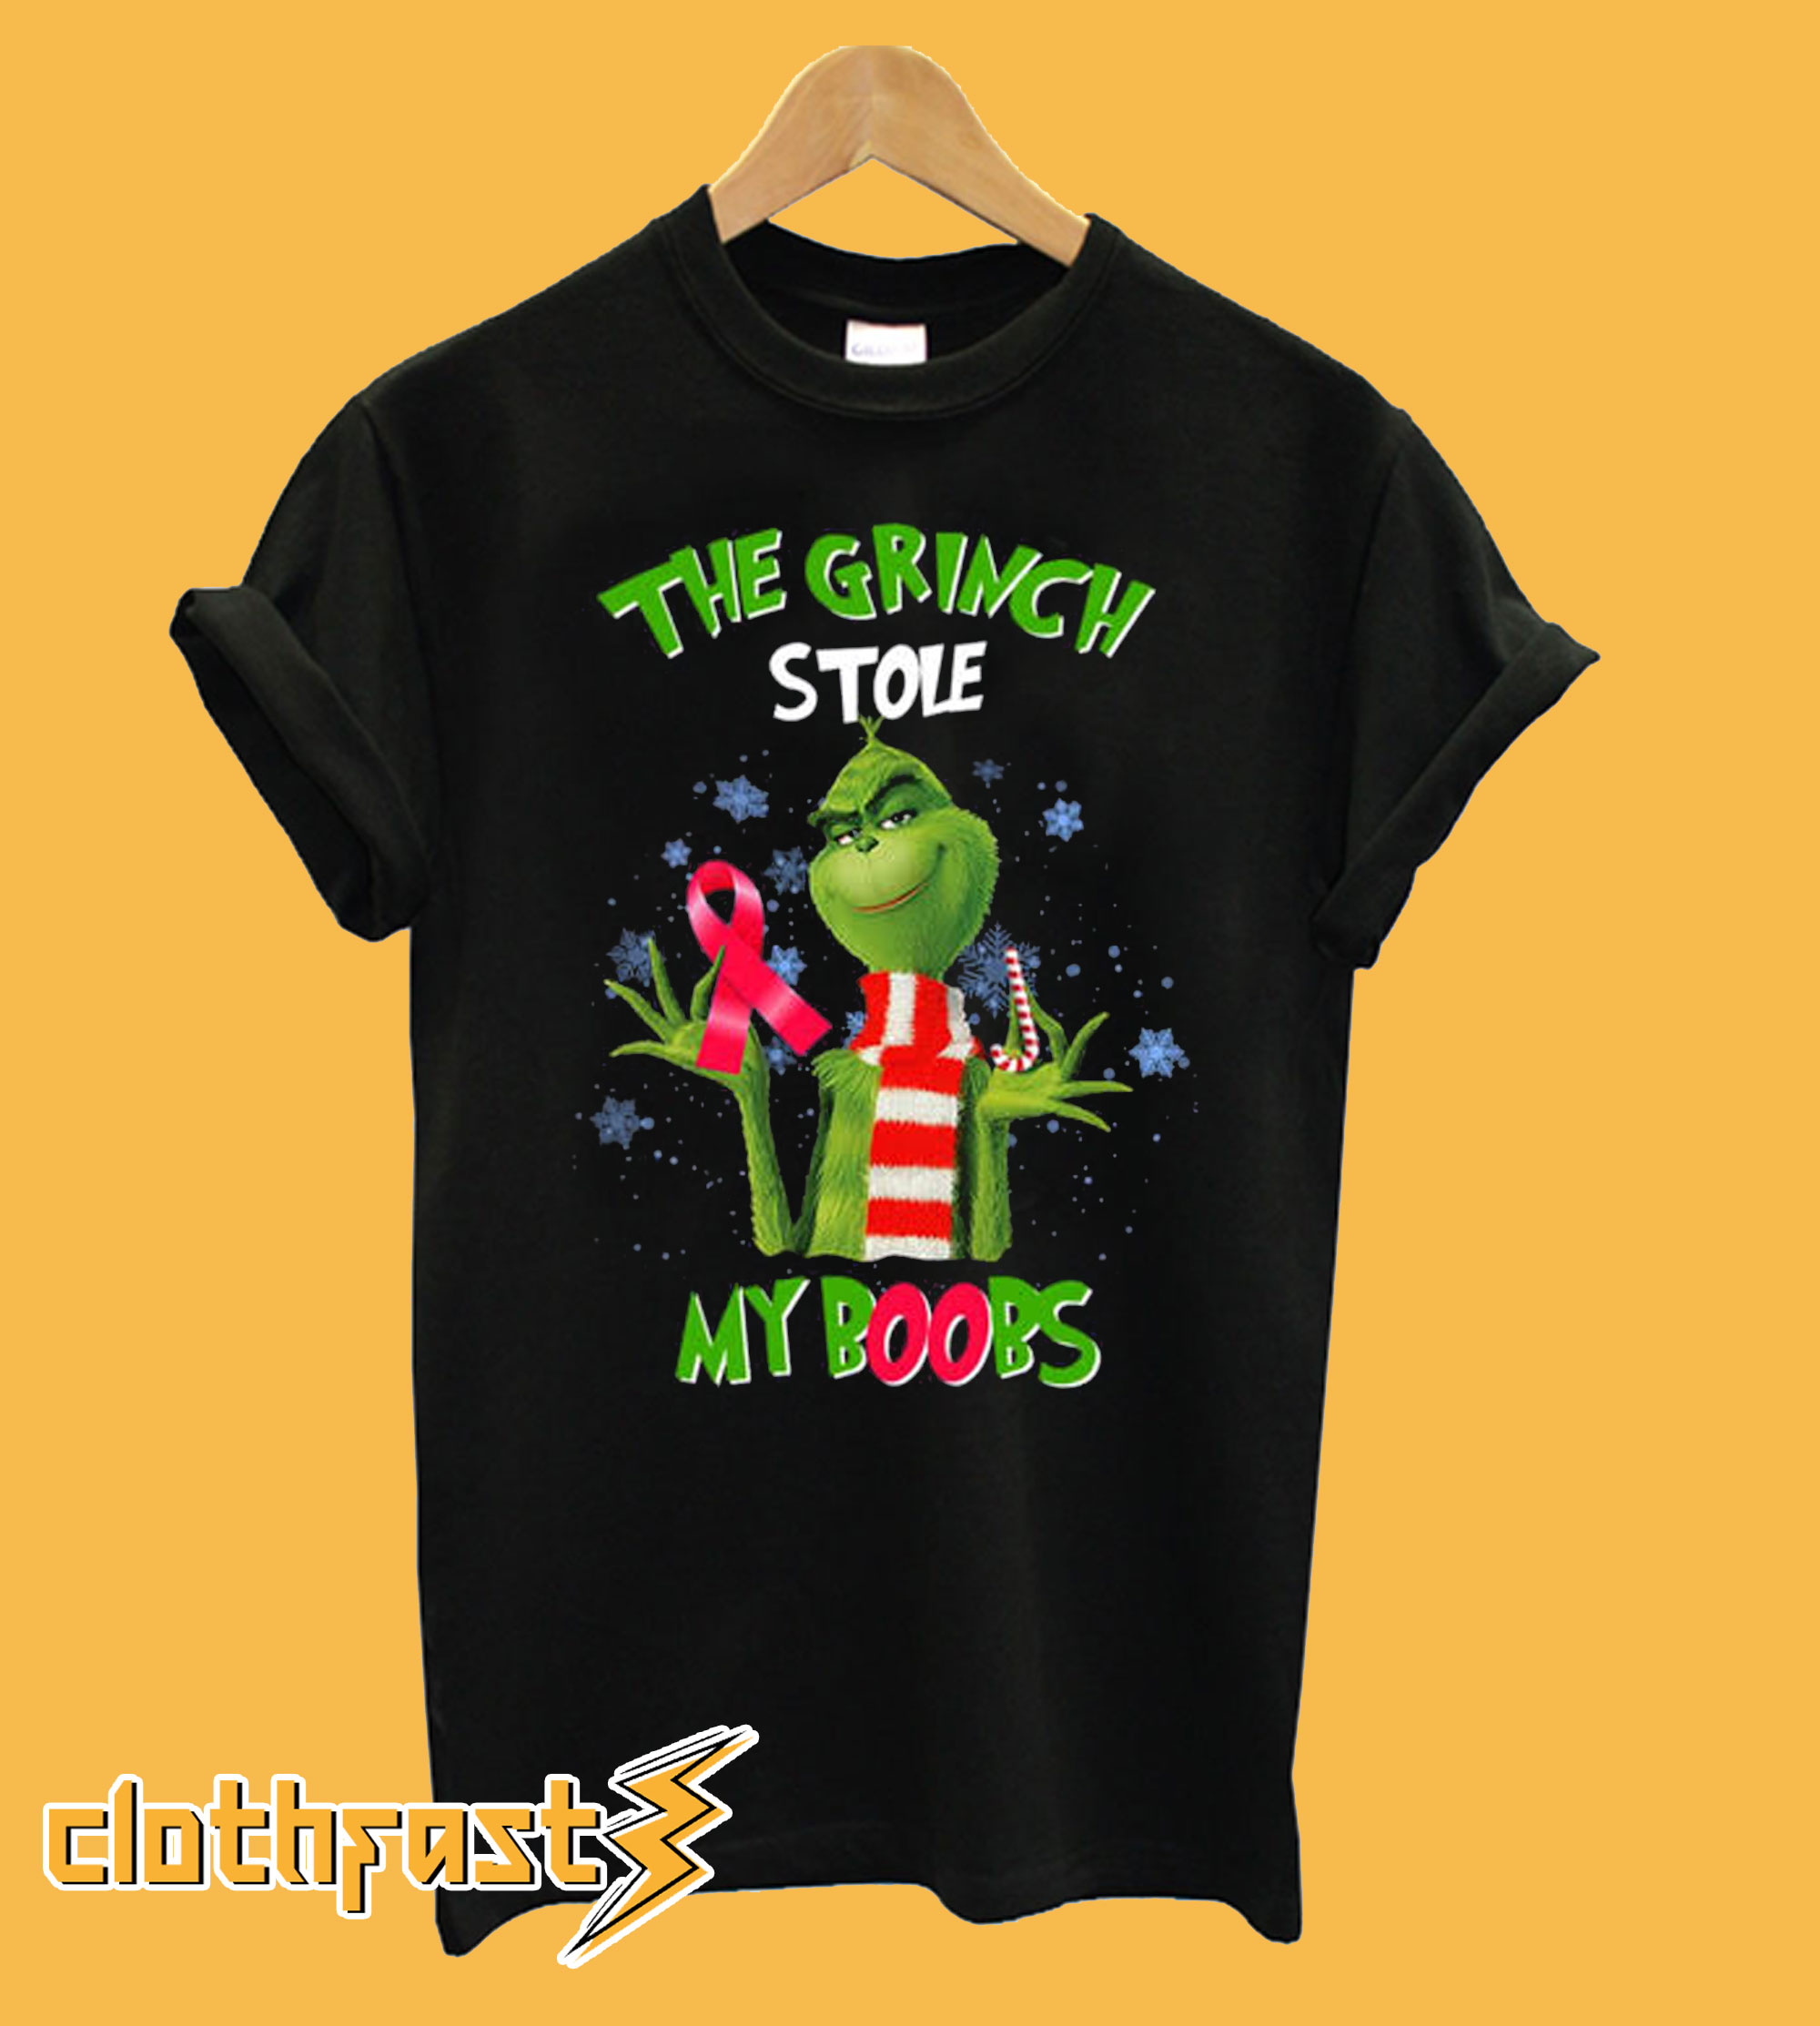 The Grinch stole my boobs T shirt